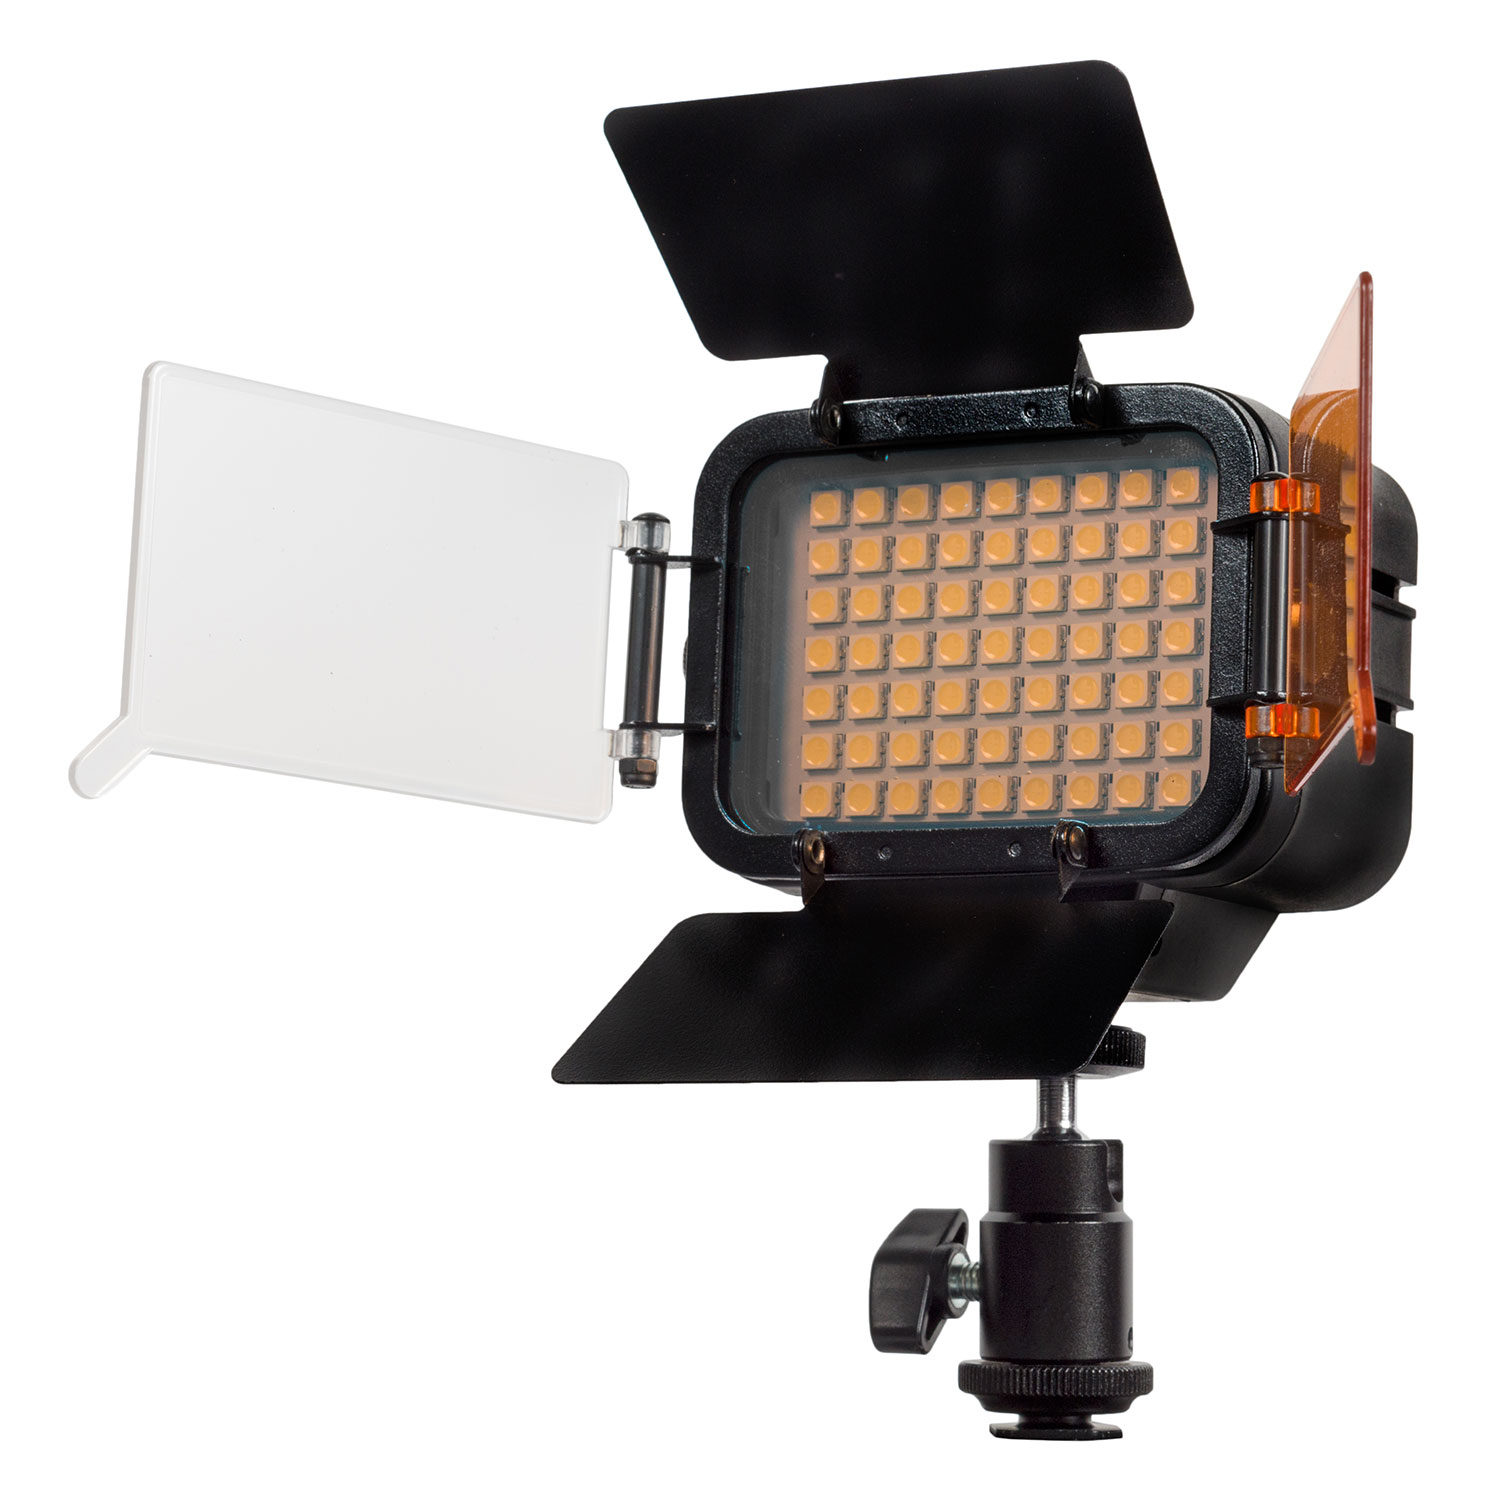 Image of Alphatron Tristar 2 On-Camera LED Lamp